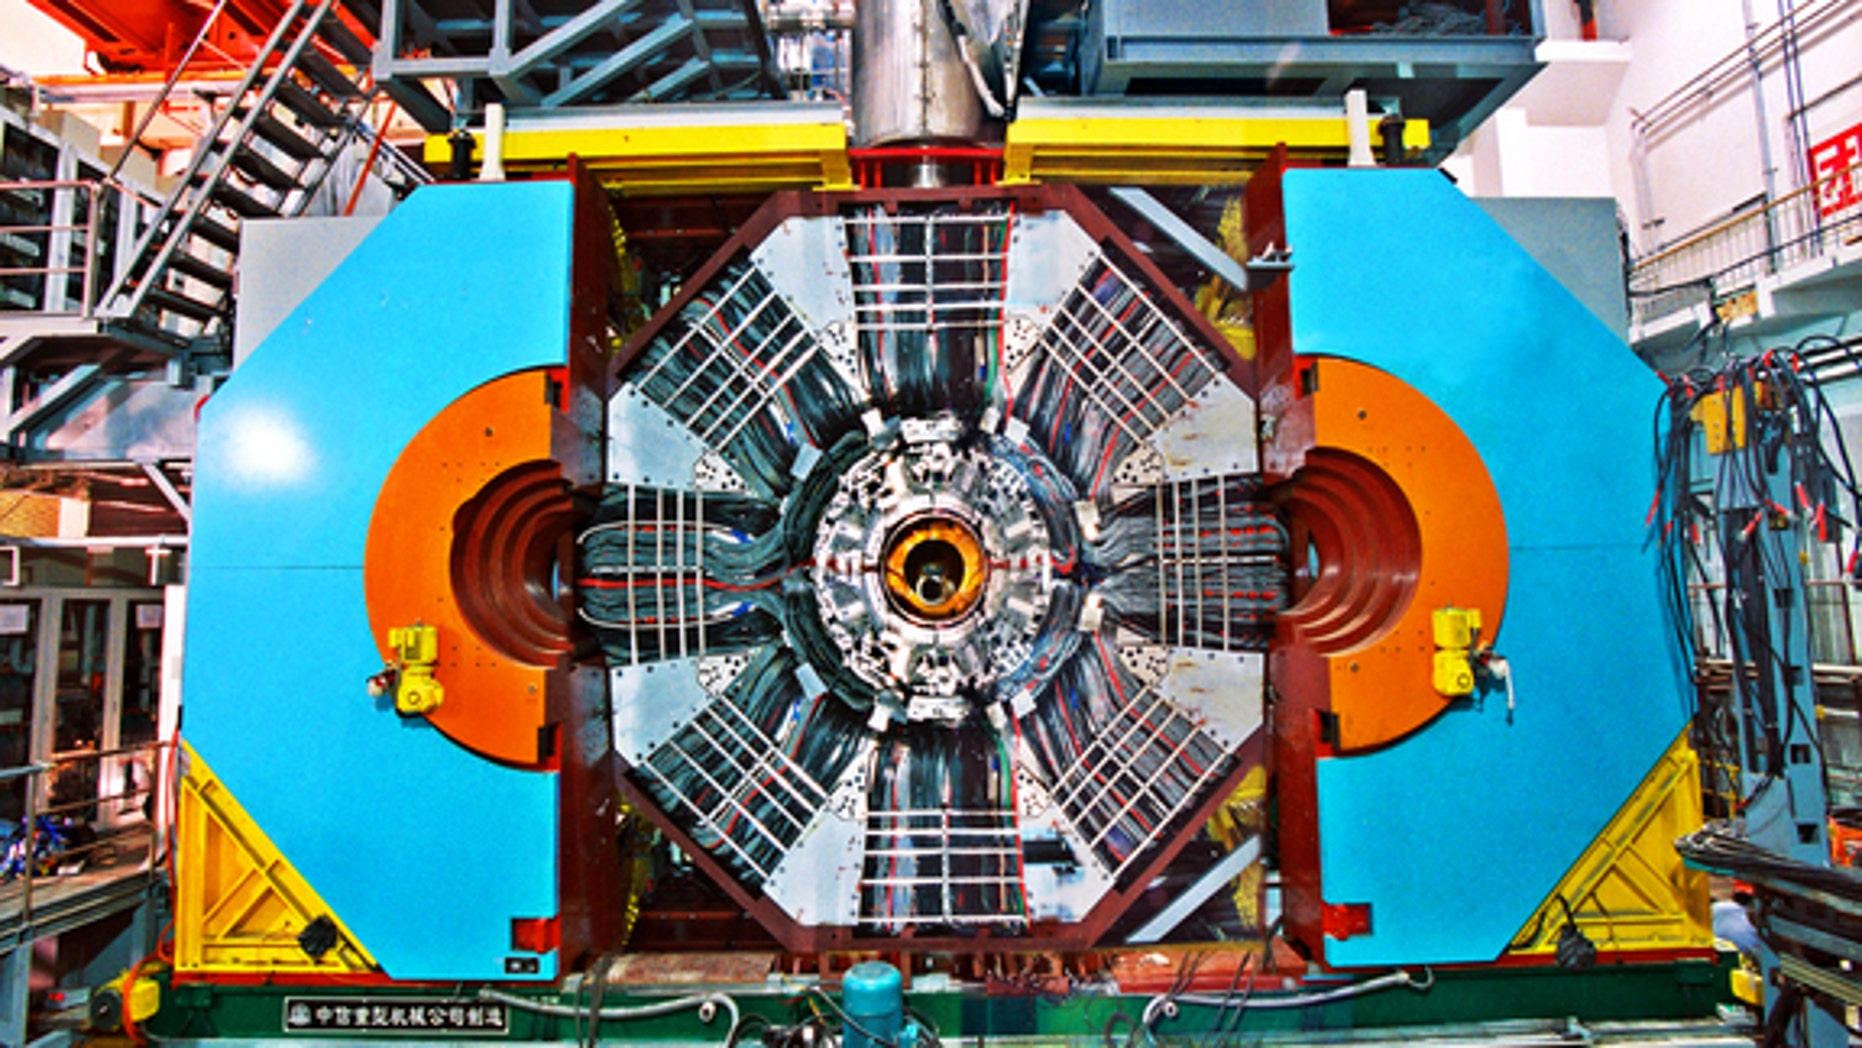 The Beijing Spectrometer Experiment (BESIII) found evidence of a new particle that may contain four quarks. The same particle was independently found at the Belle experiment in Japan, with both projects publishing their results June 17, 2013.